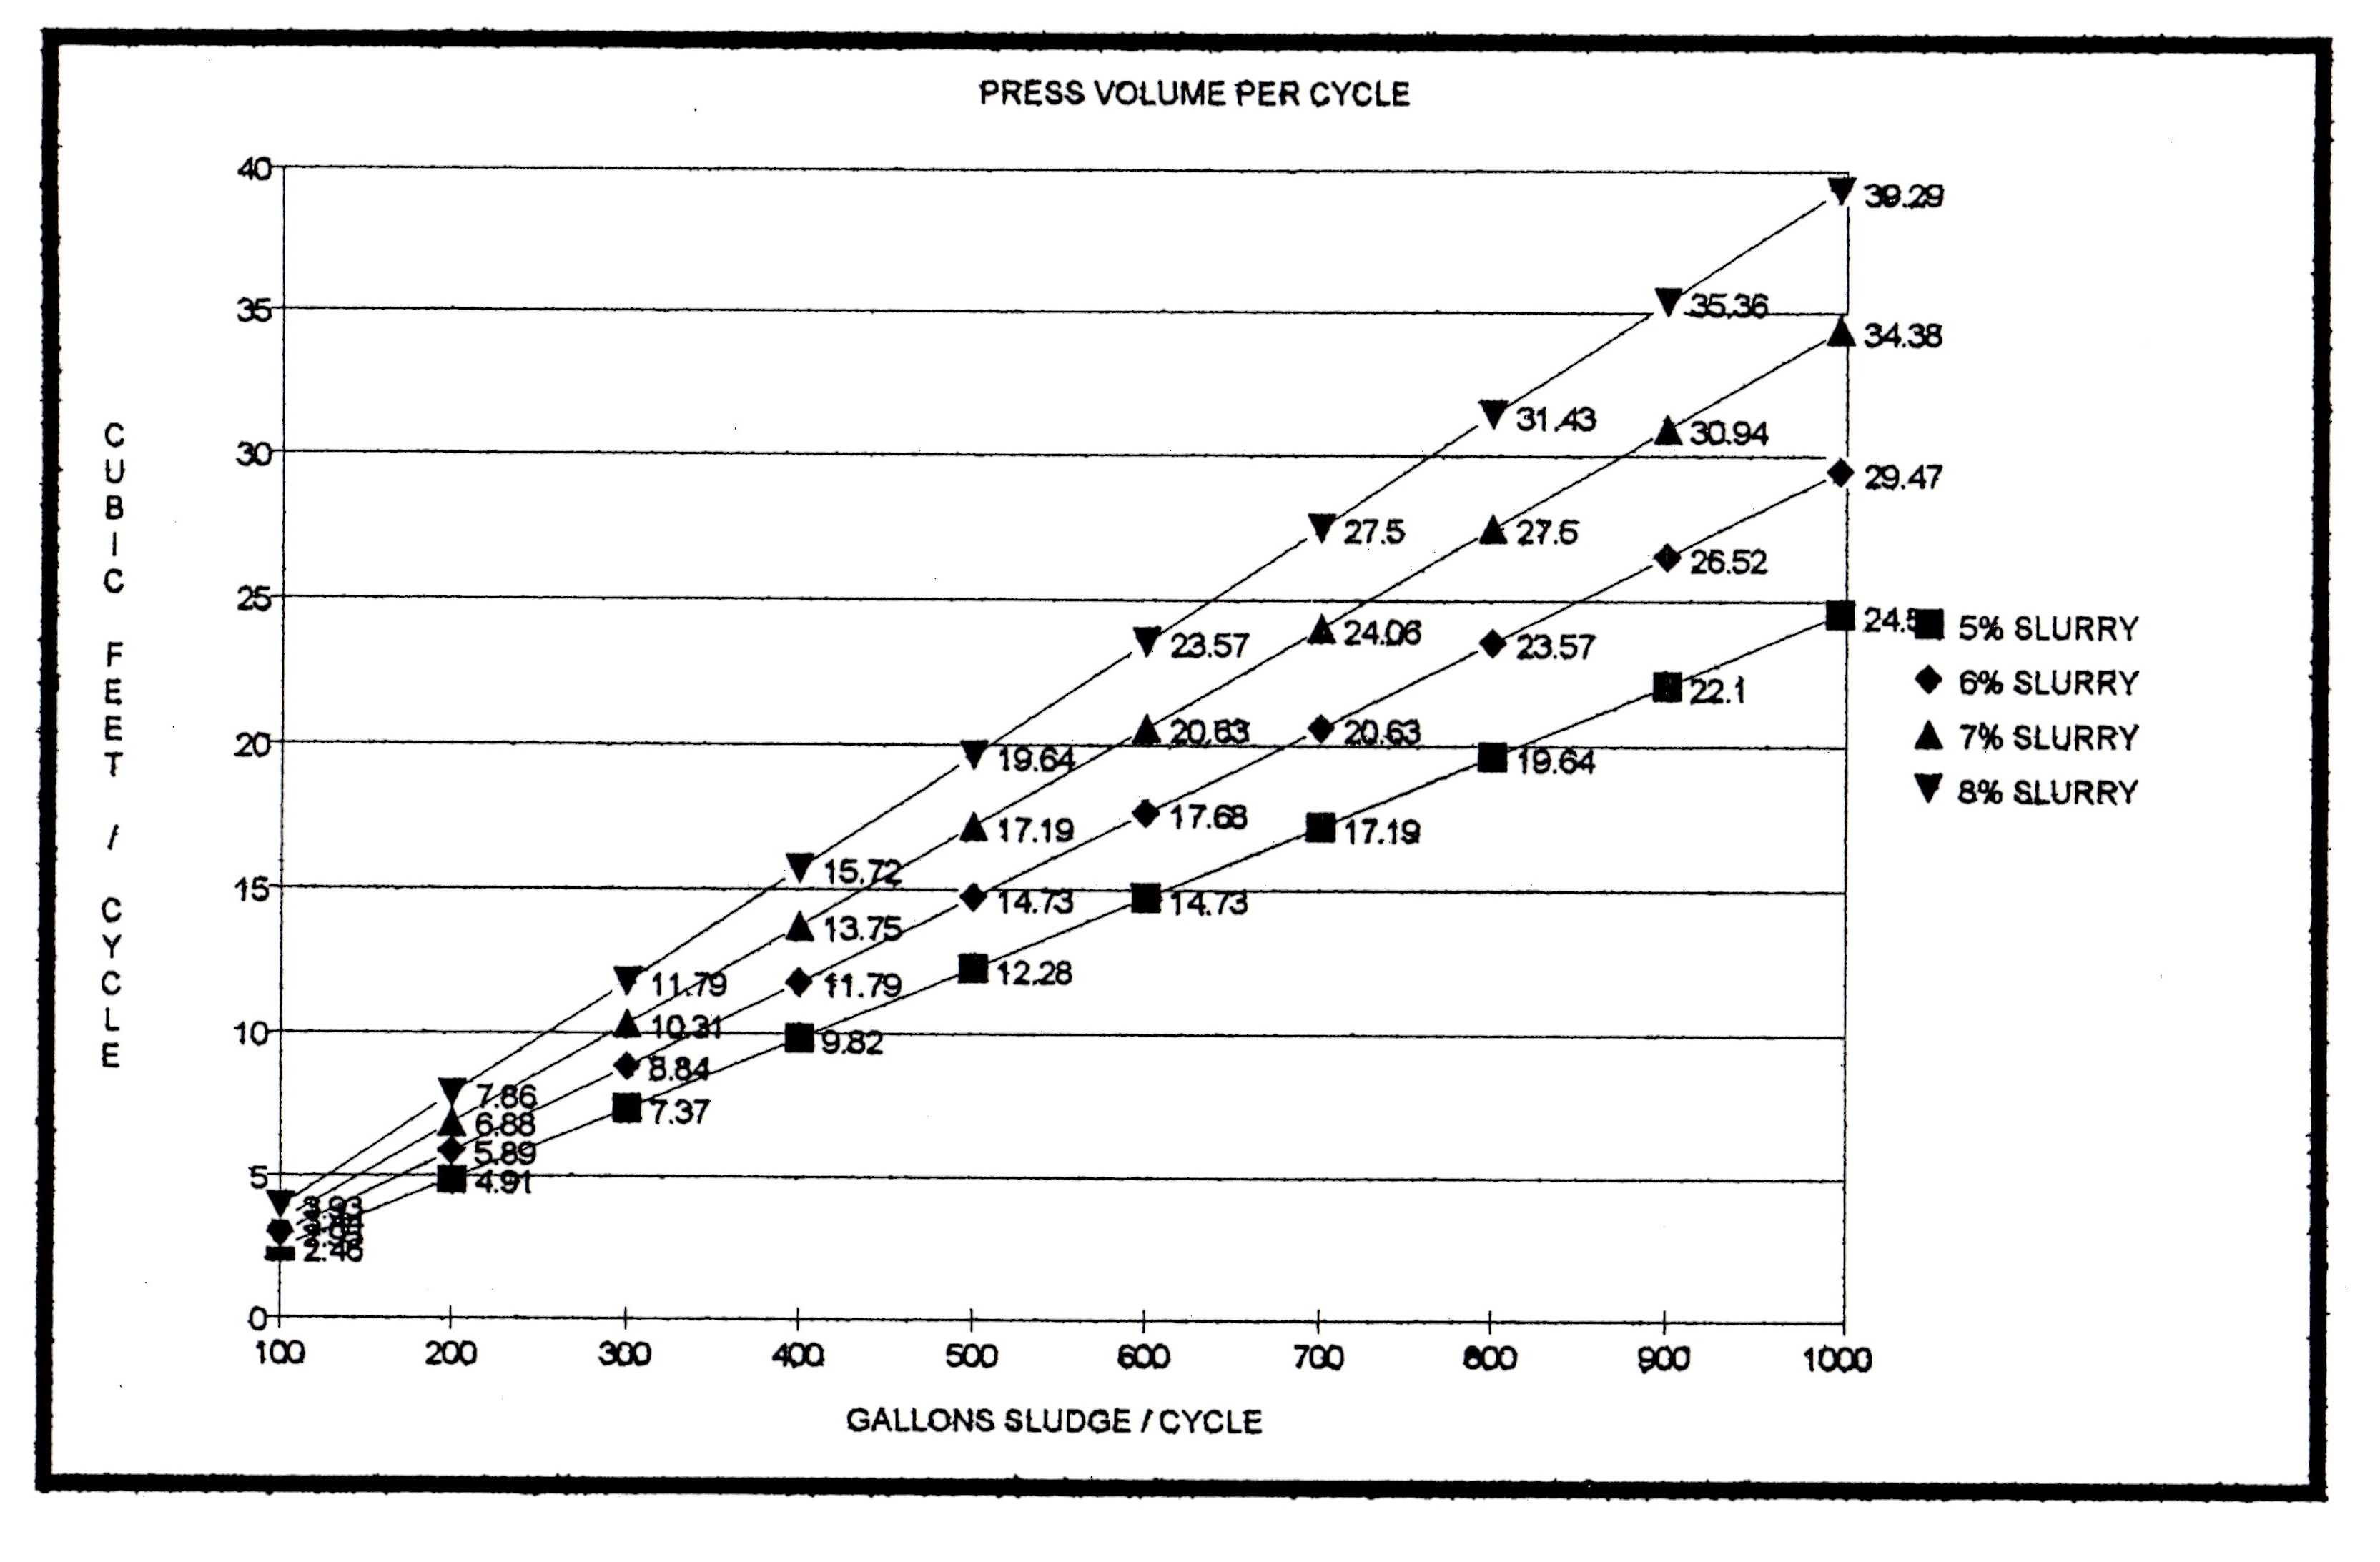 Filter Press Volume per Cycle